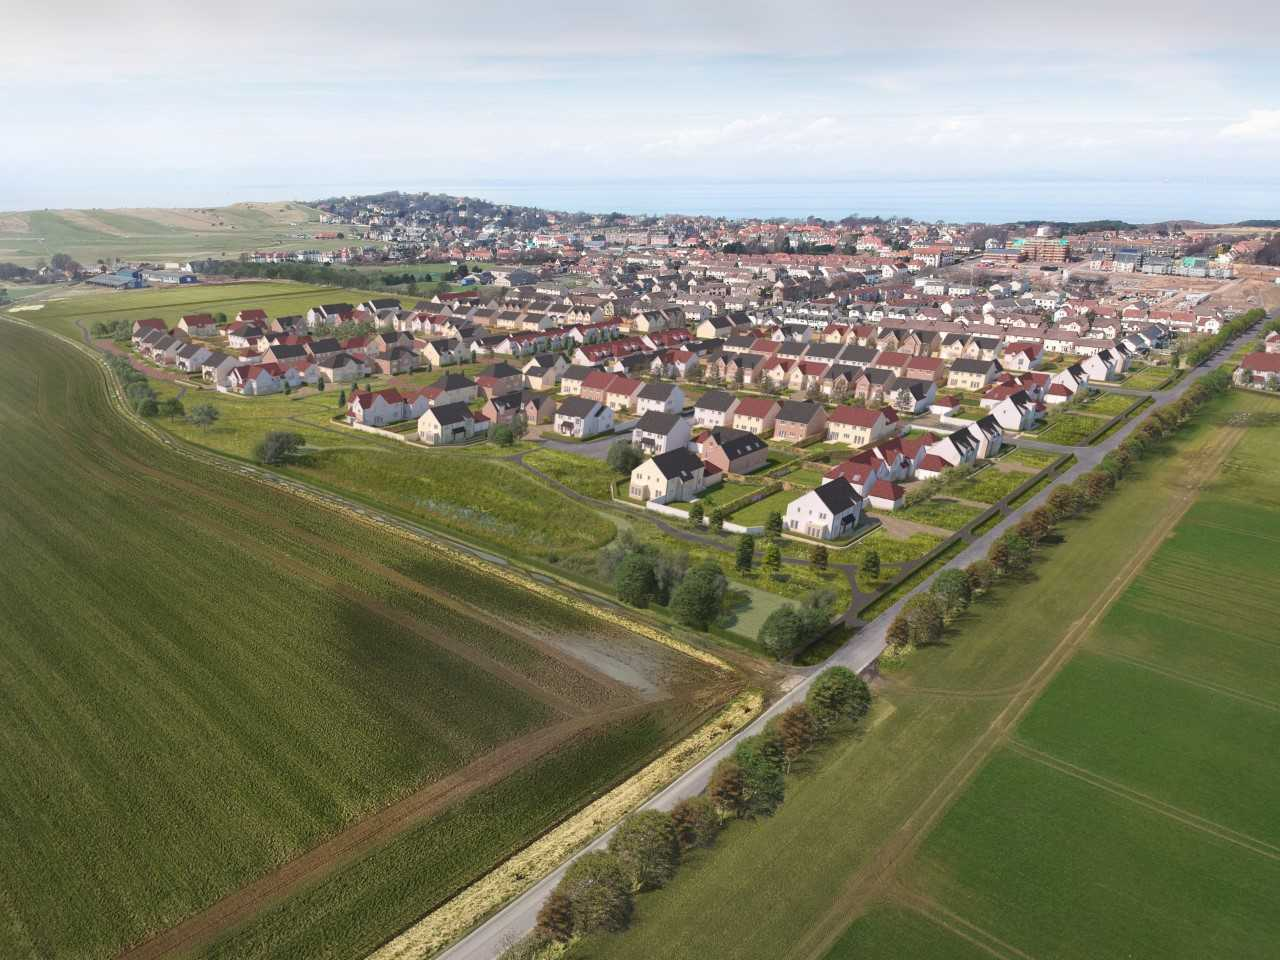 East Lothian Council is weighing up plans for housing on Saltcoats Field to the south of Gullane